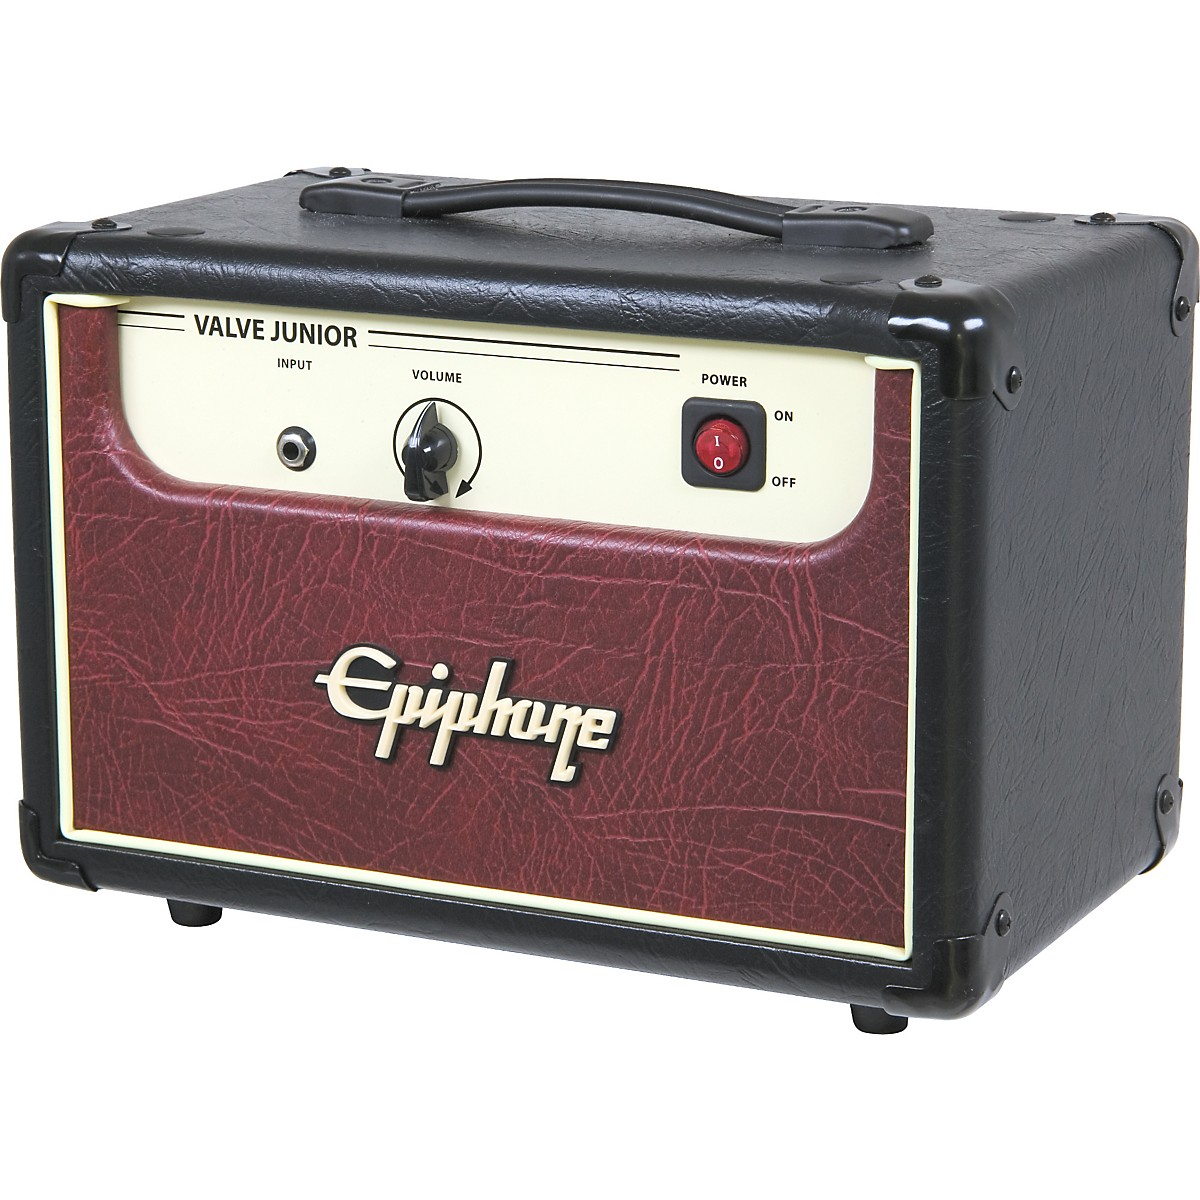 Epiphone Valve Junior Head Tube Guitar Amplifier